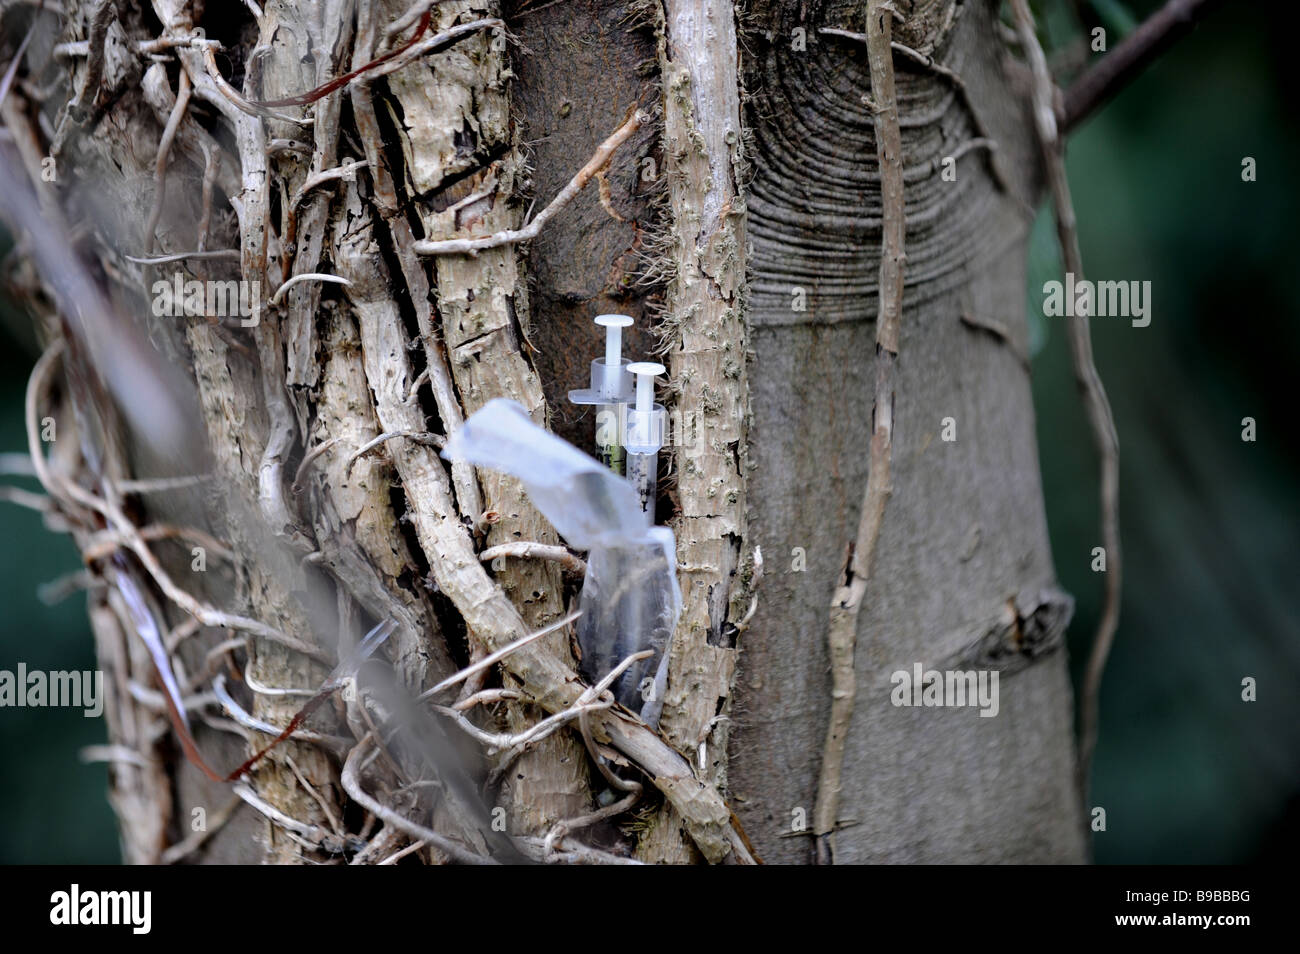 Two used hypodermic needles stuck in a tree trunk - Stock Image